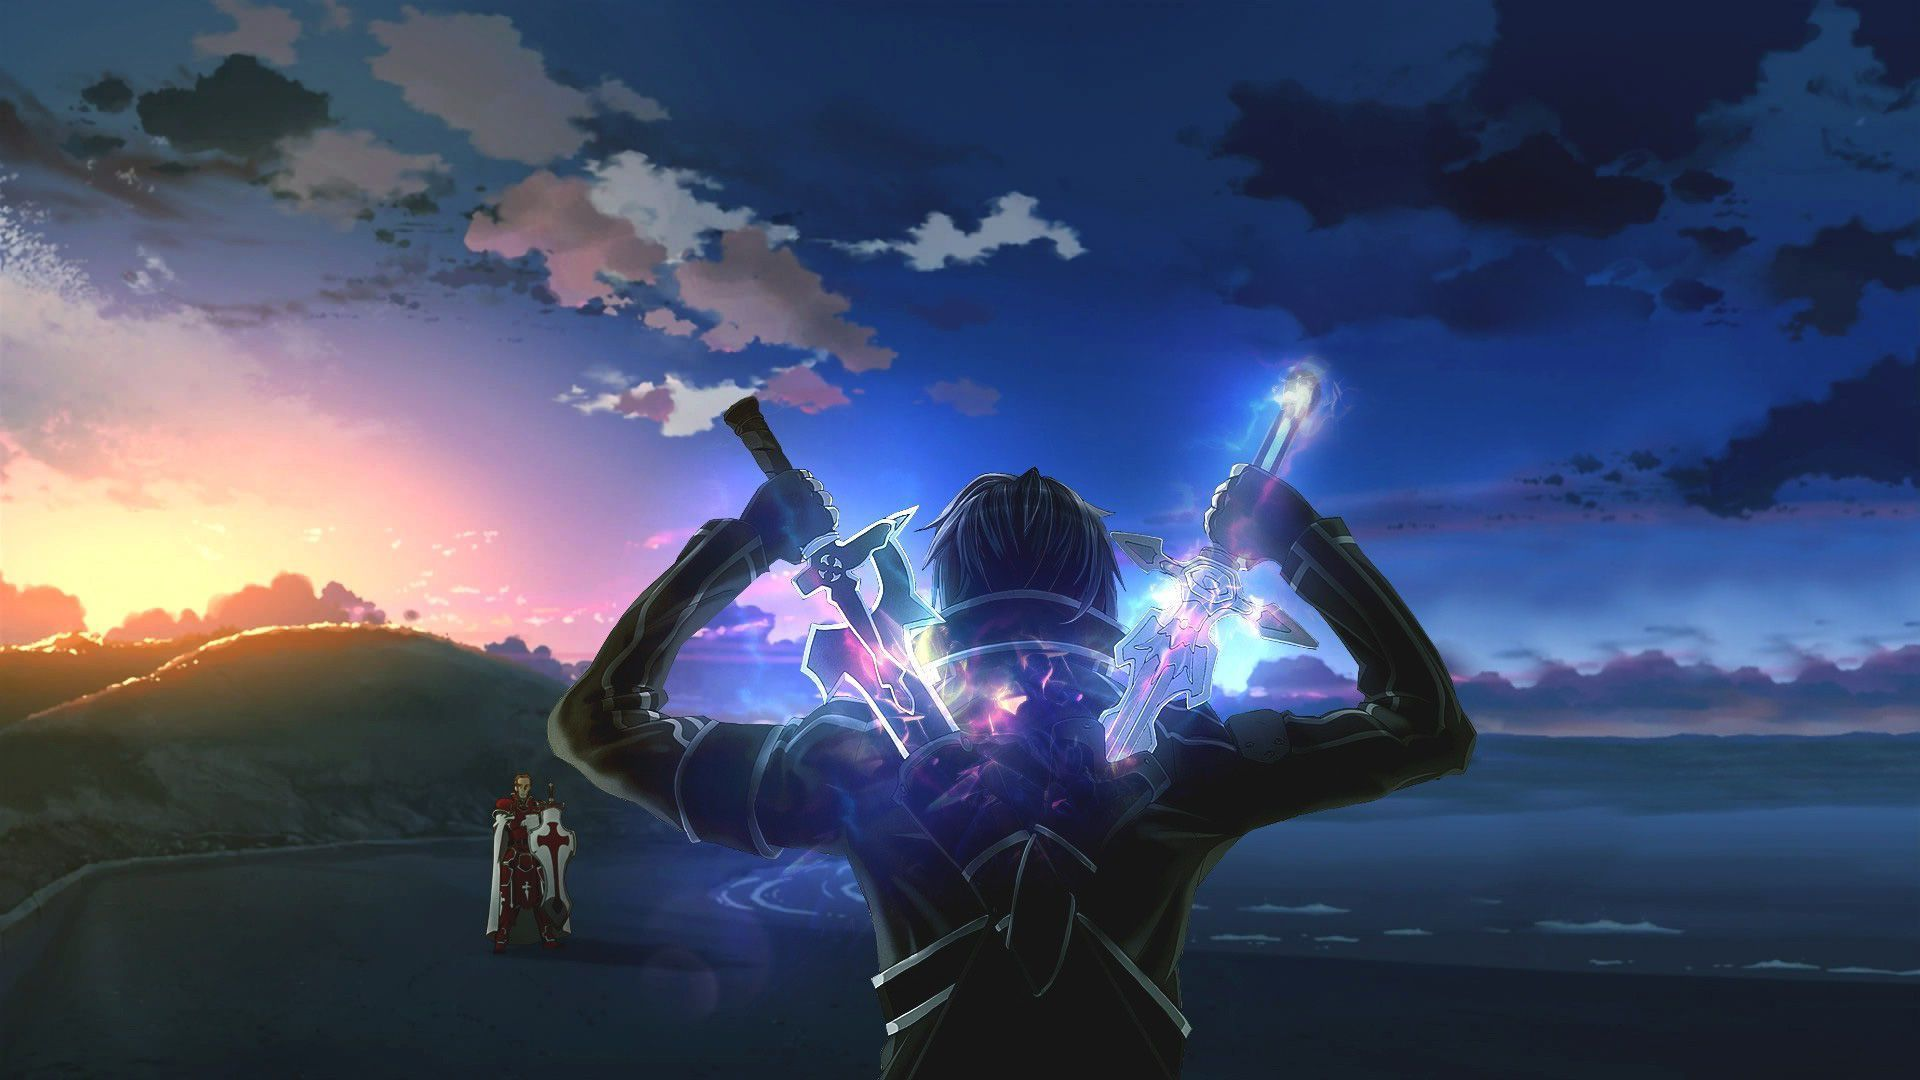 Animetime Sword Art Online Kirito Sao 1920 1080 Awesomewallpaper Sword Art Online Wallpaper Sword Art Sword Art Online Kirito